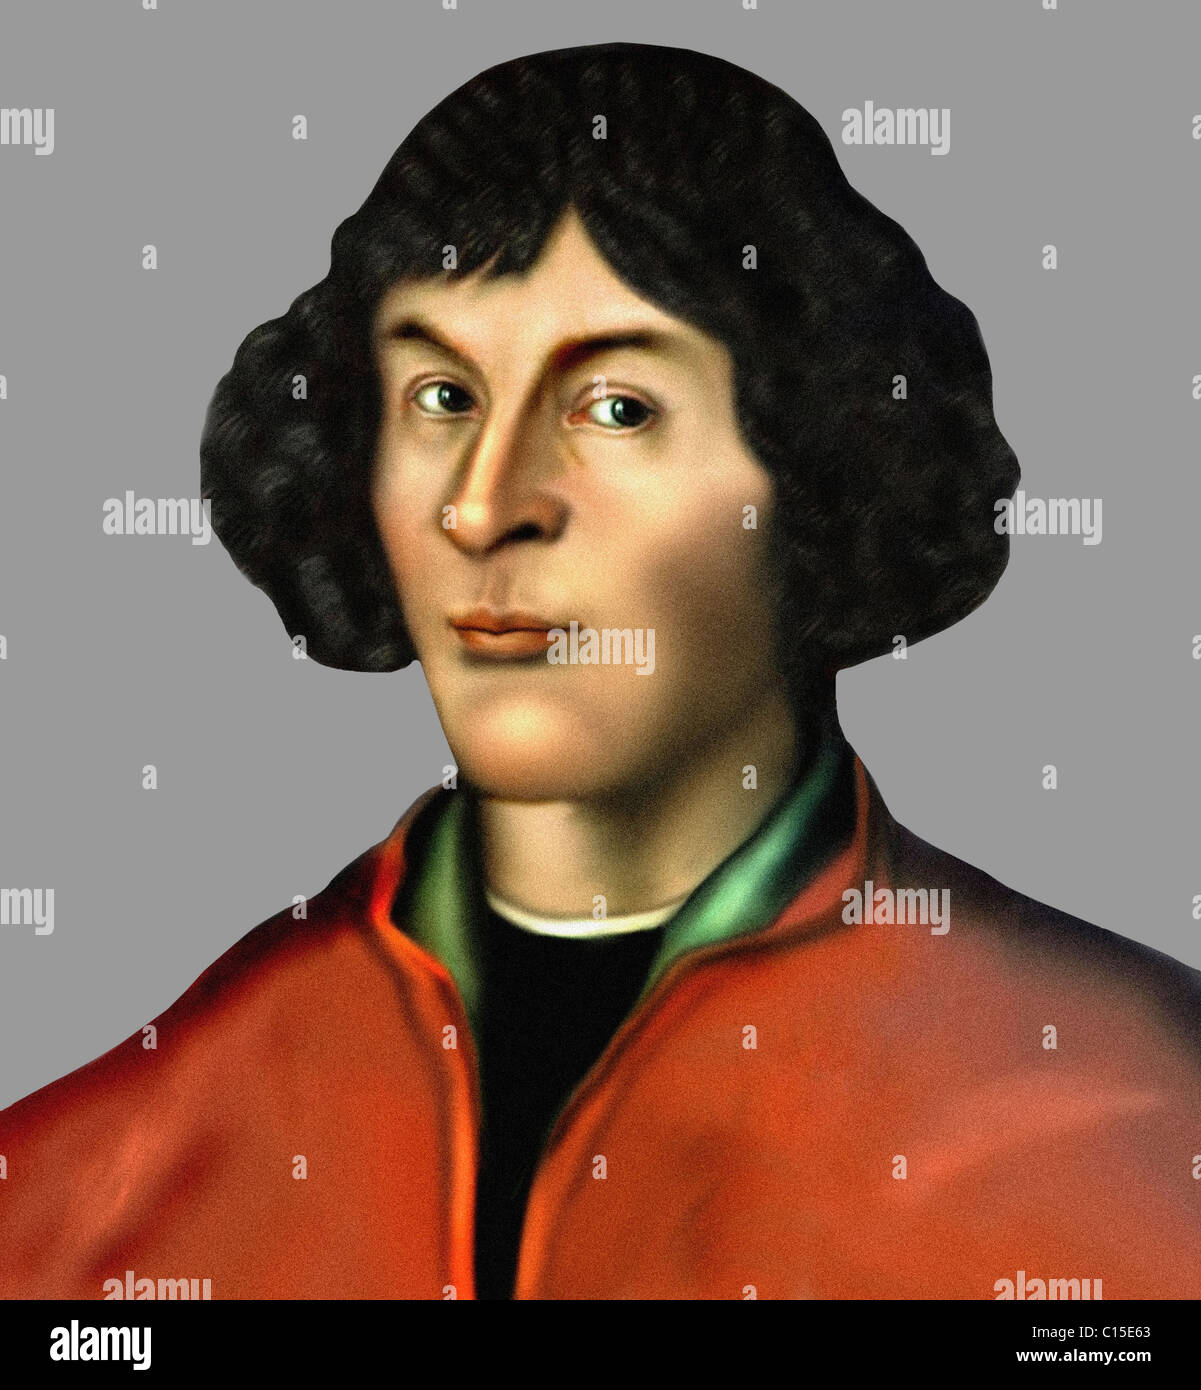 a biography of nicolaus copernicus from poland Nicolaus copernicus was born on february 19, 1473, in torun, poland, about  100 miles south of danzig he belonged to a family of merchants his uncle, the.